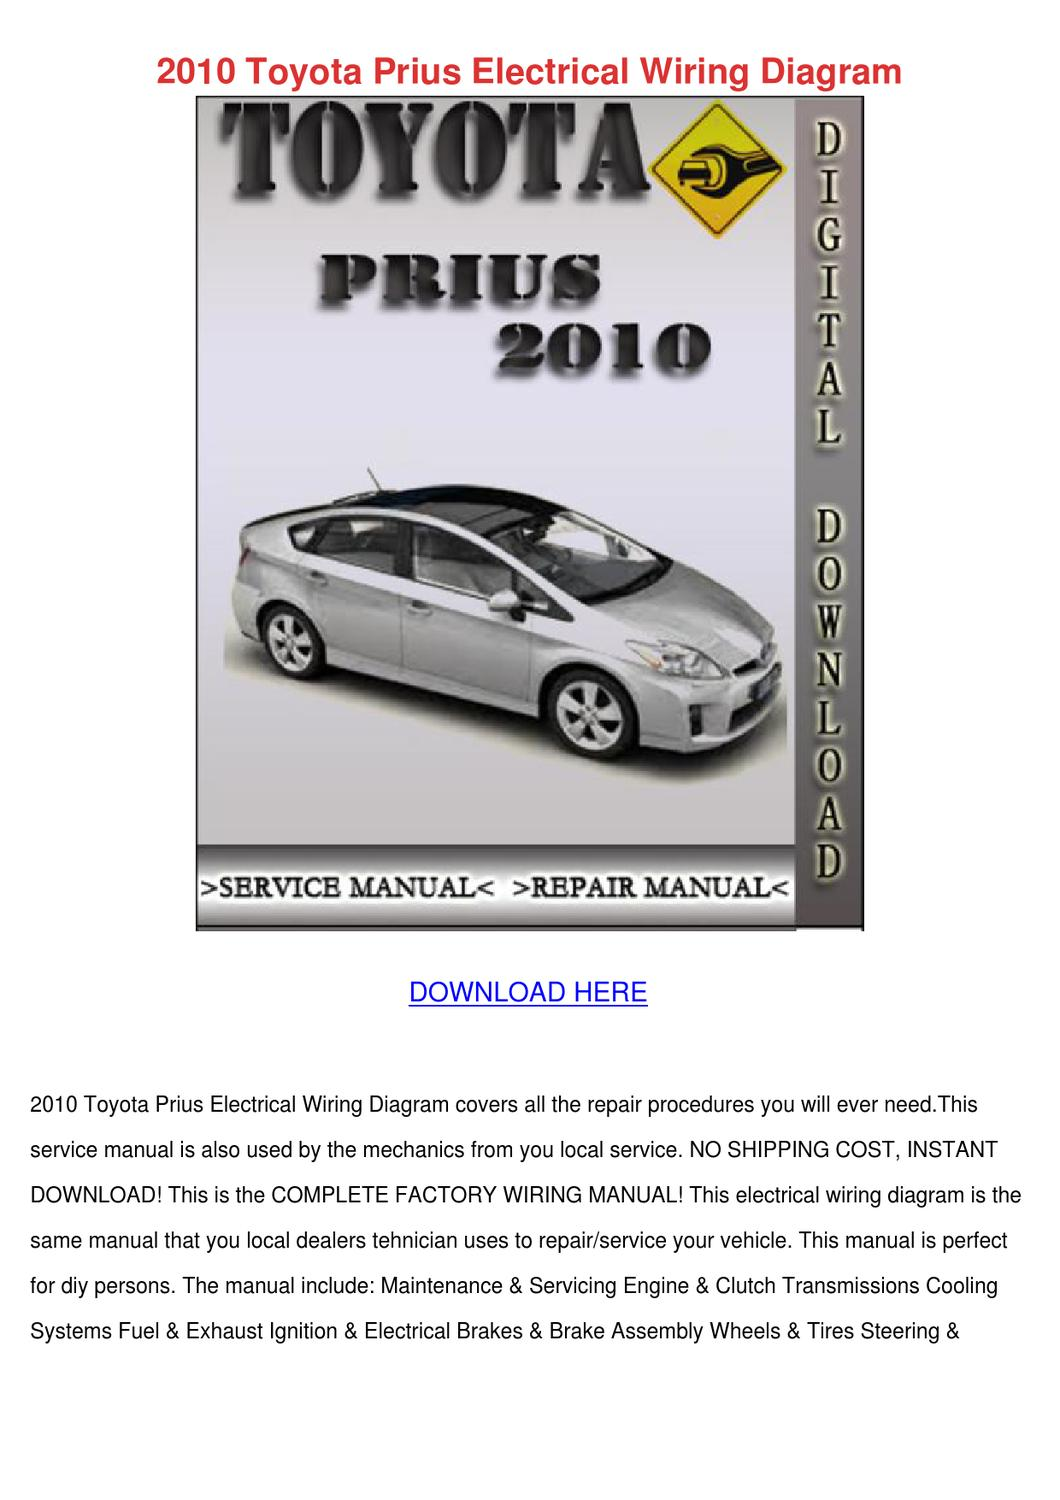 Toyota Prius Electrical Wiring Diagram Library Landcruiser 100 Series Download 2010 By Wardtoledo Issuu